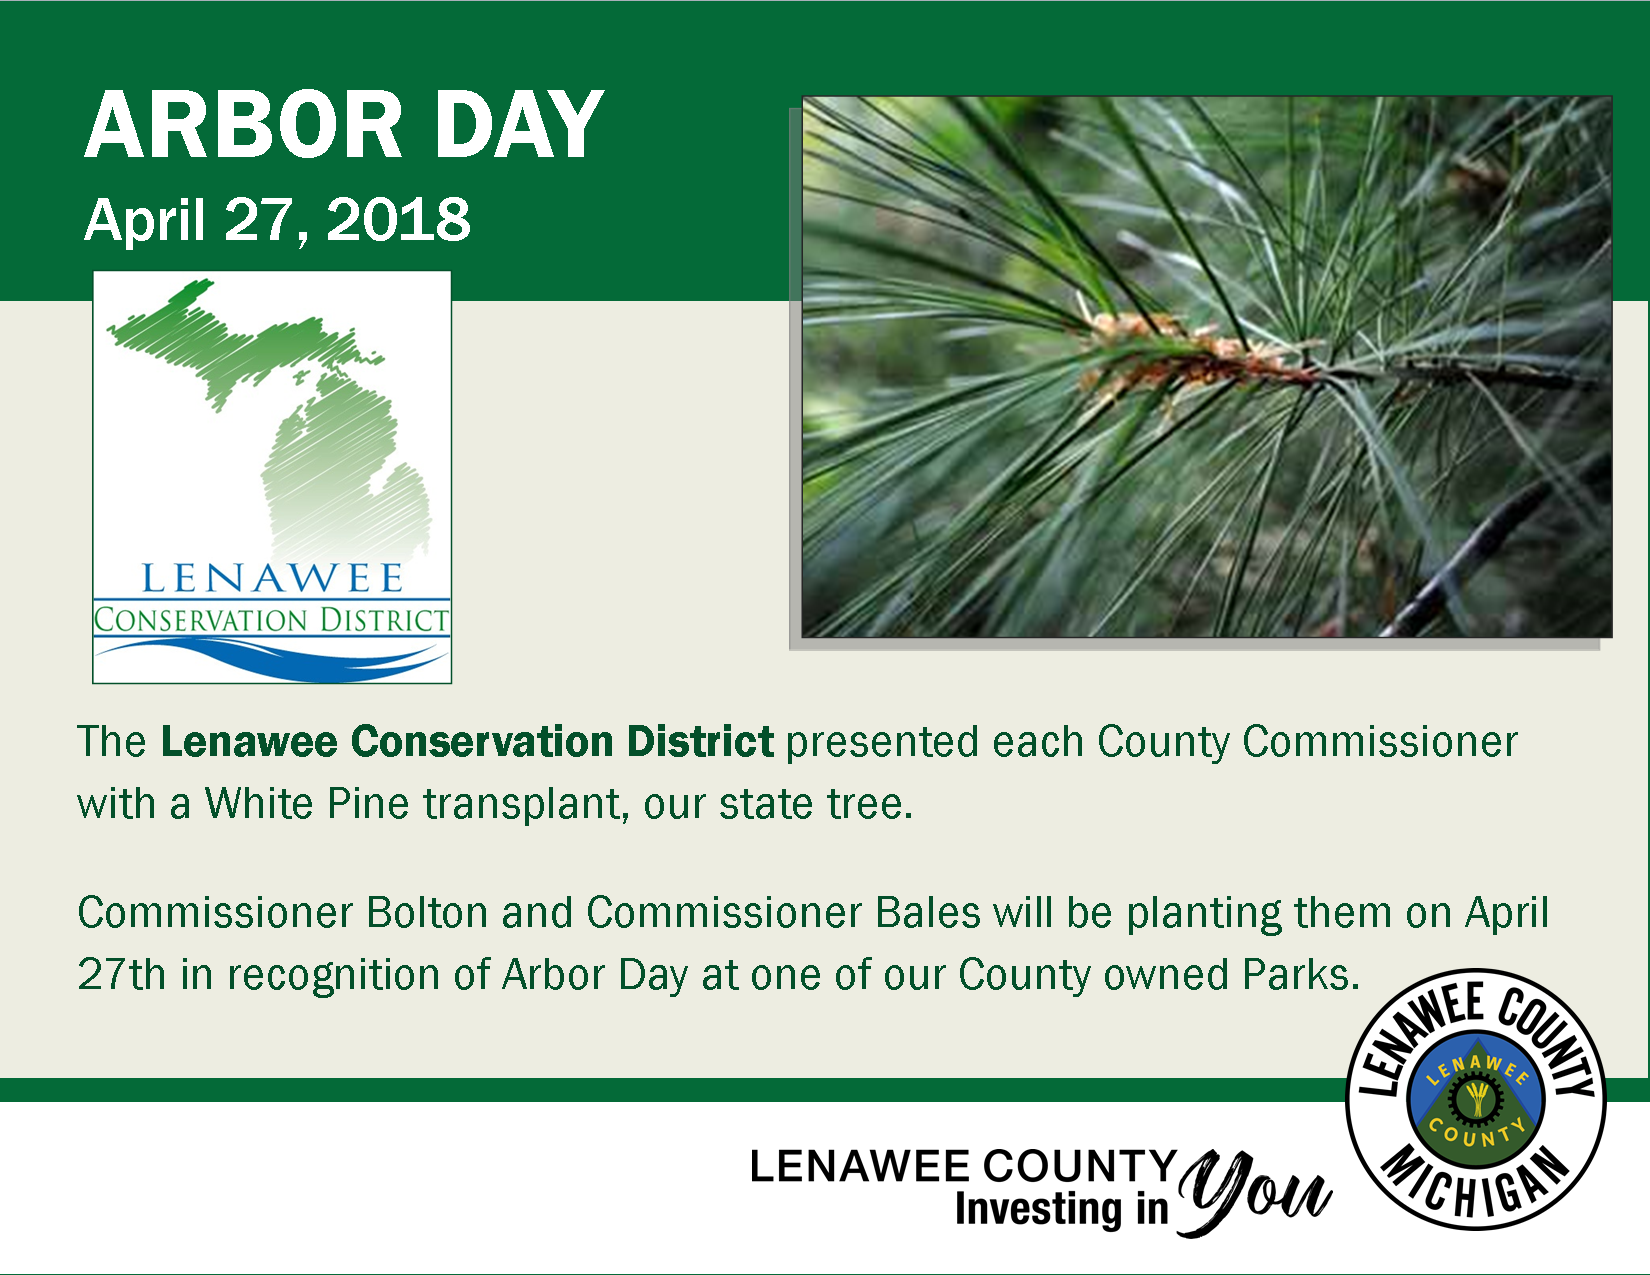 Arbor Day - Thank you Conservation District